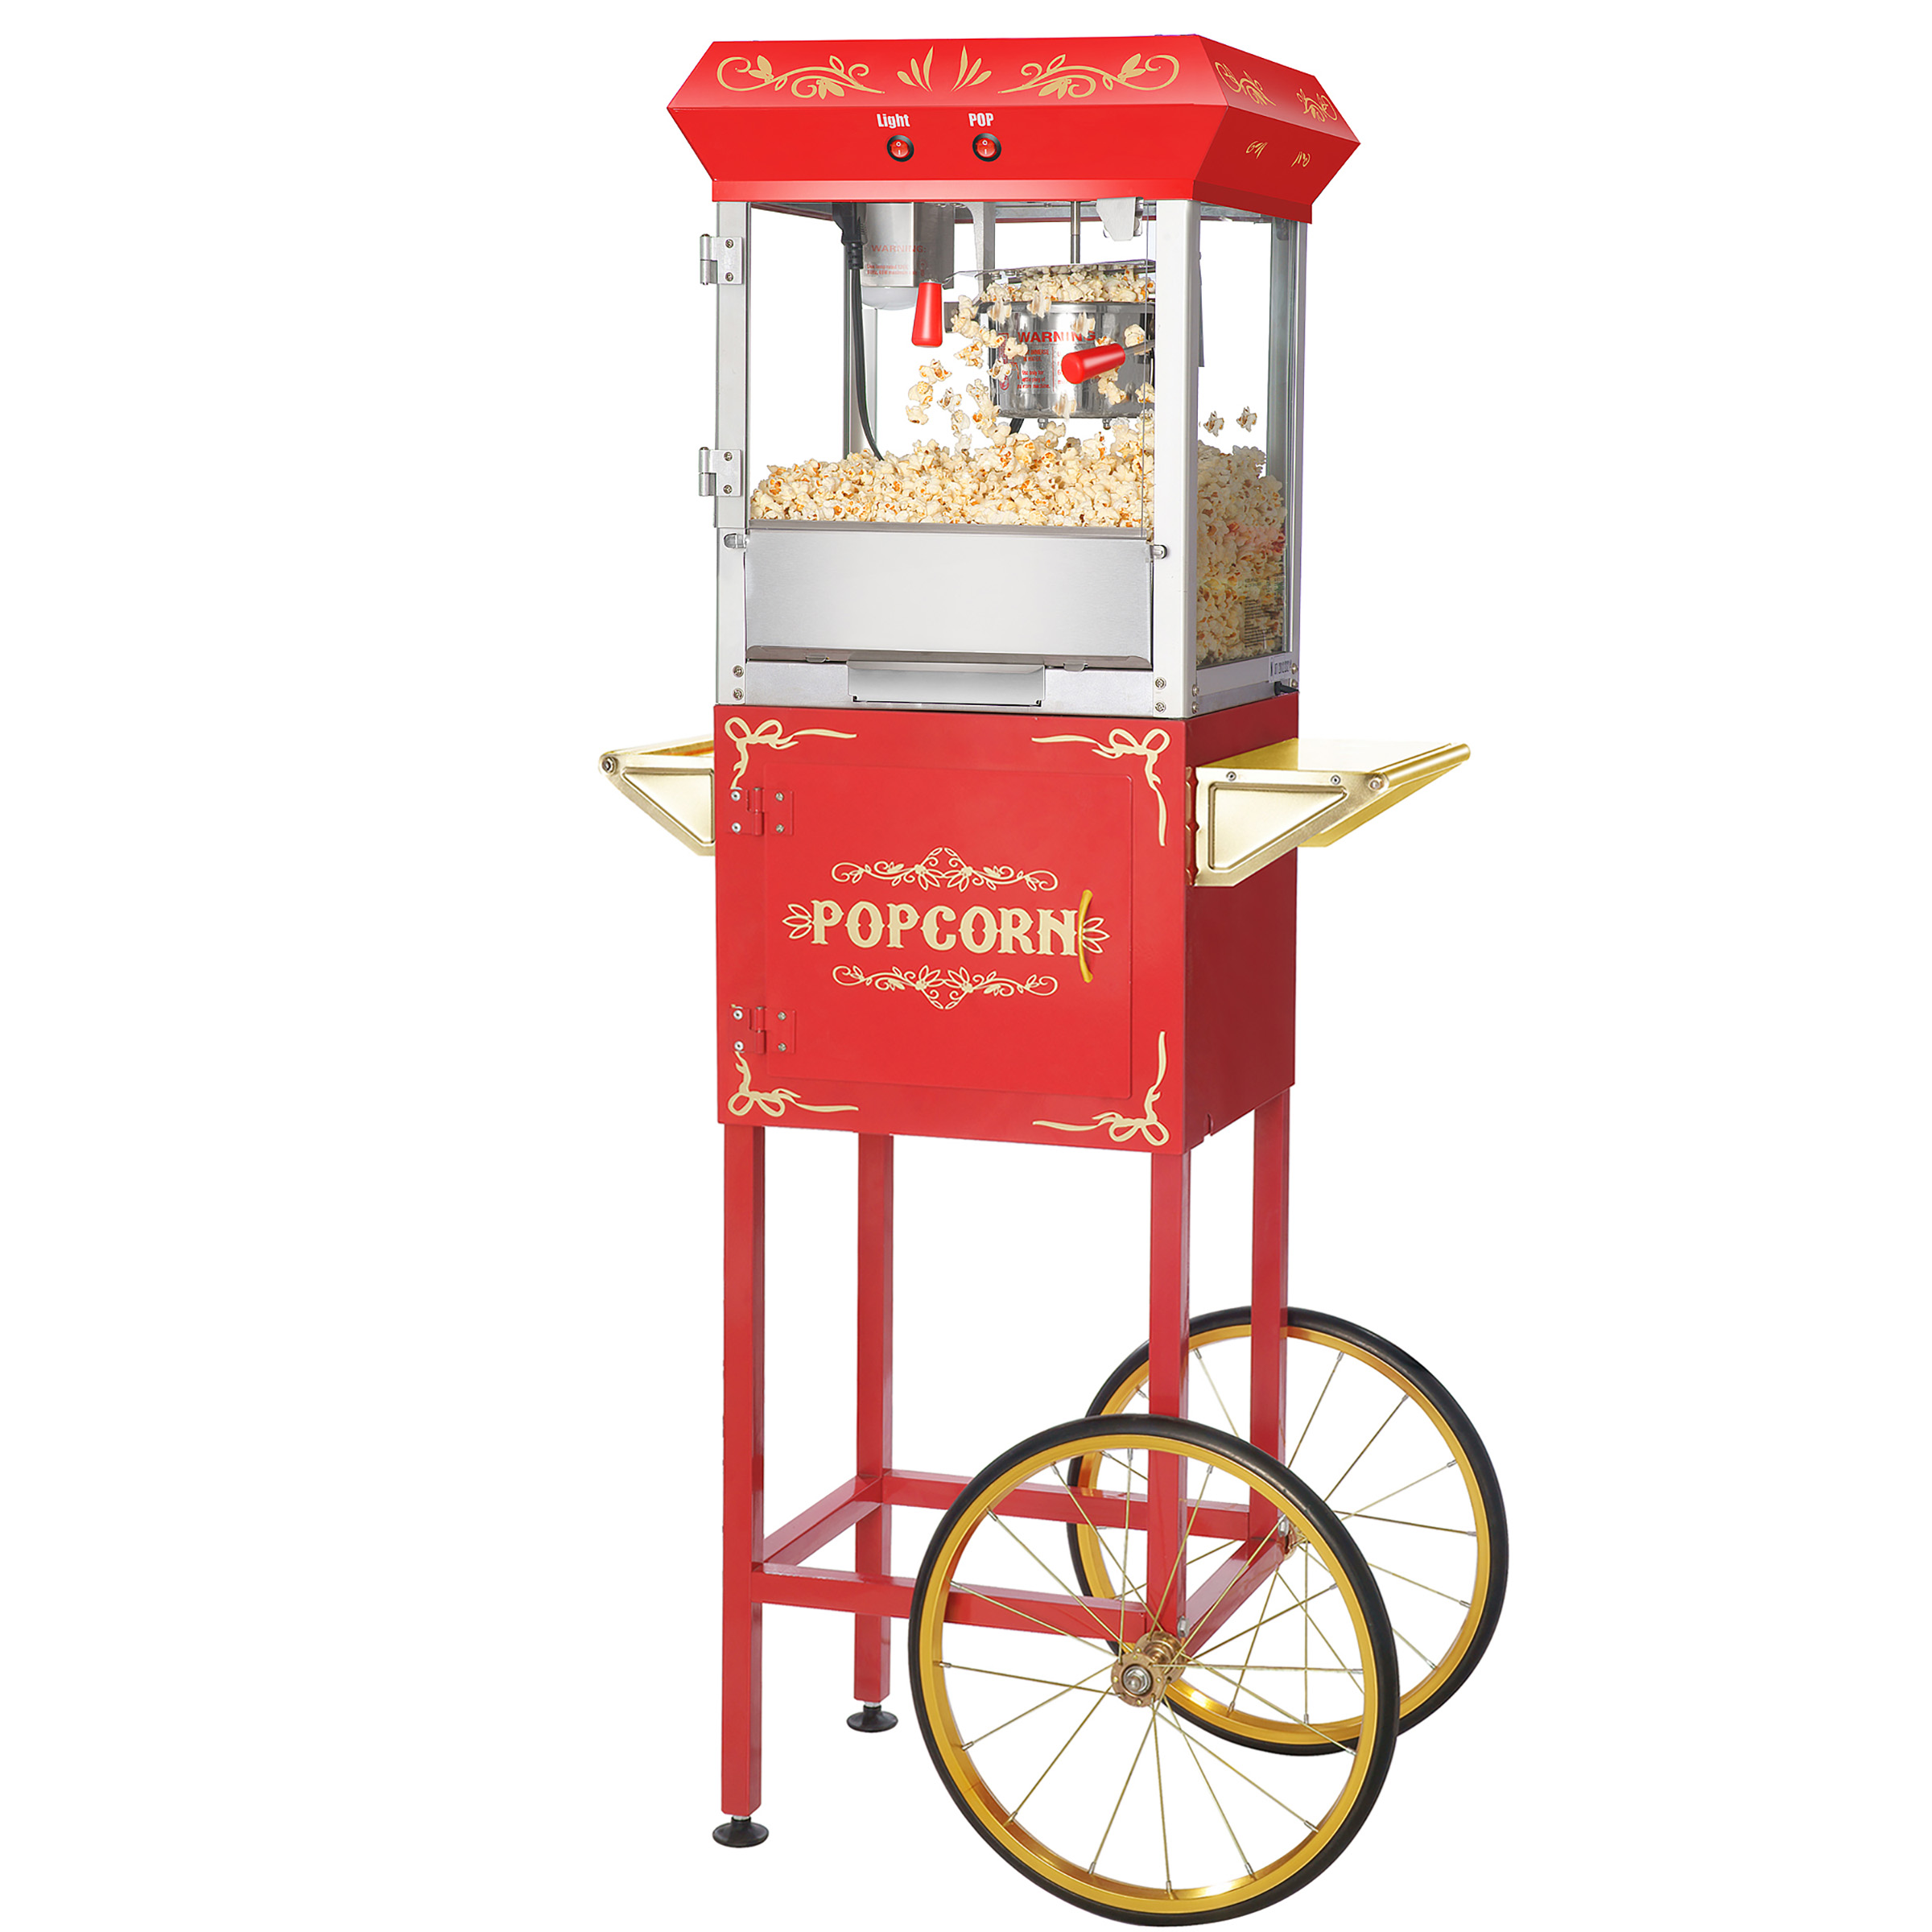 Foundation Popcorn Popper Machine Cart, 6 Ounce by Great Northern Popcorn